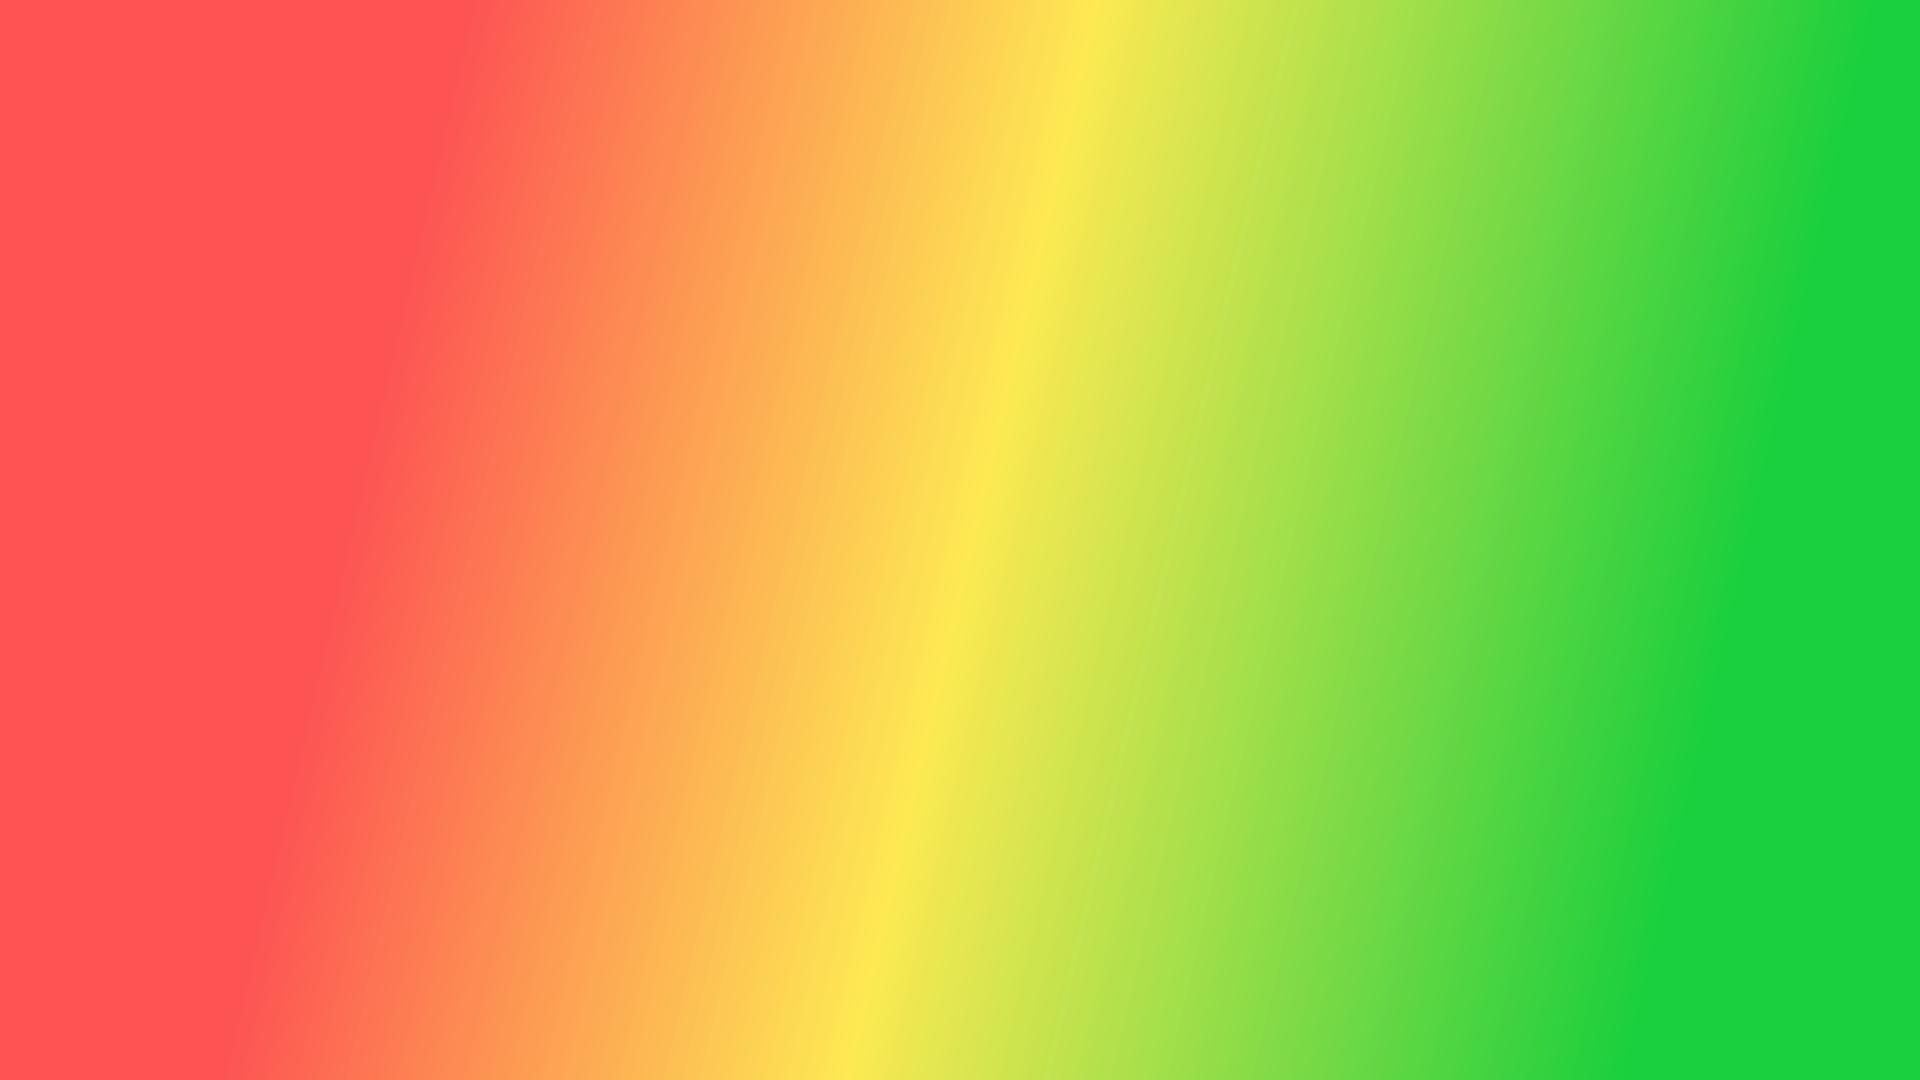 Red-Yellow-Green Gradient